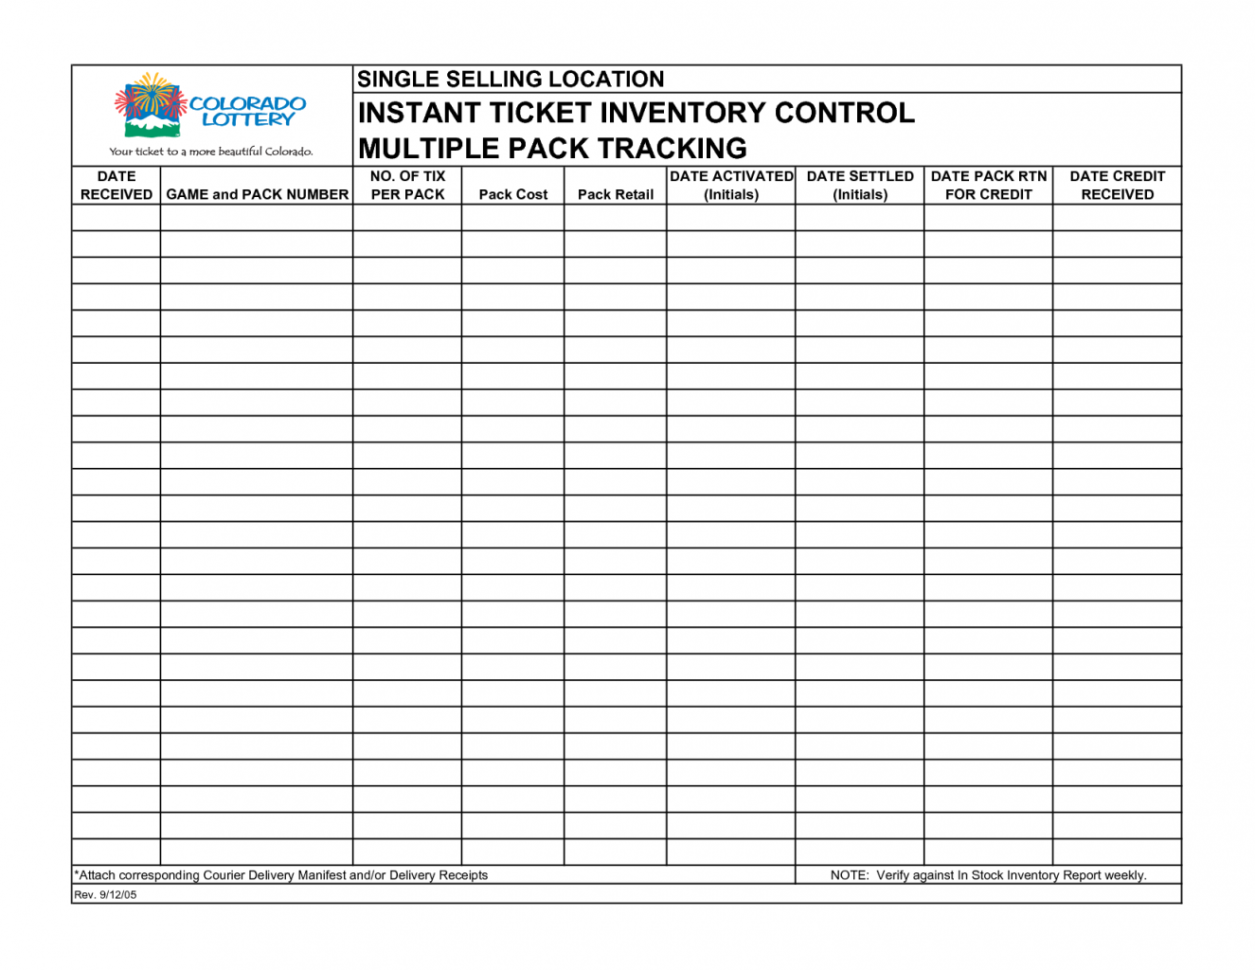 Excel Inventory Template With Formulas Excel Inventory Tracking Template How To Manage Inventory With Excel Free Printable Inventory Sheets Free Stock Inventory Software Excel Small Business Inventory Spreadsheet Template Inventory Control Template With Count Sheet  Inventory Sheet Template Free Printable Inventory Spreadsheet Template Spreadsheet Templates for Busines